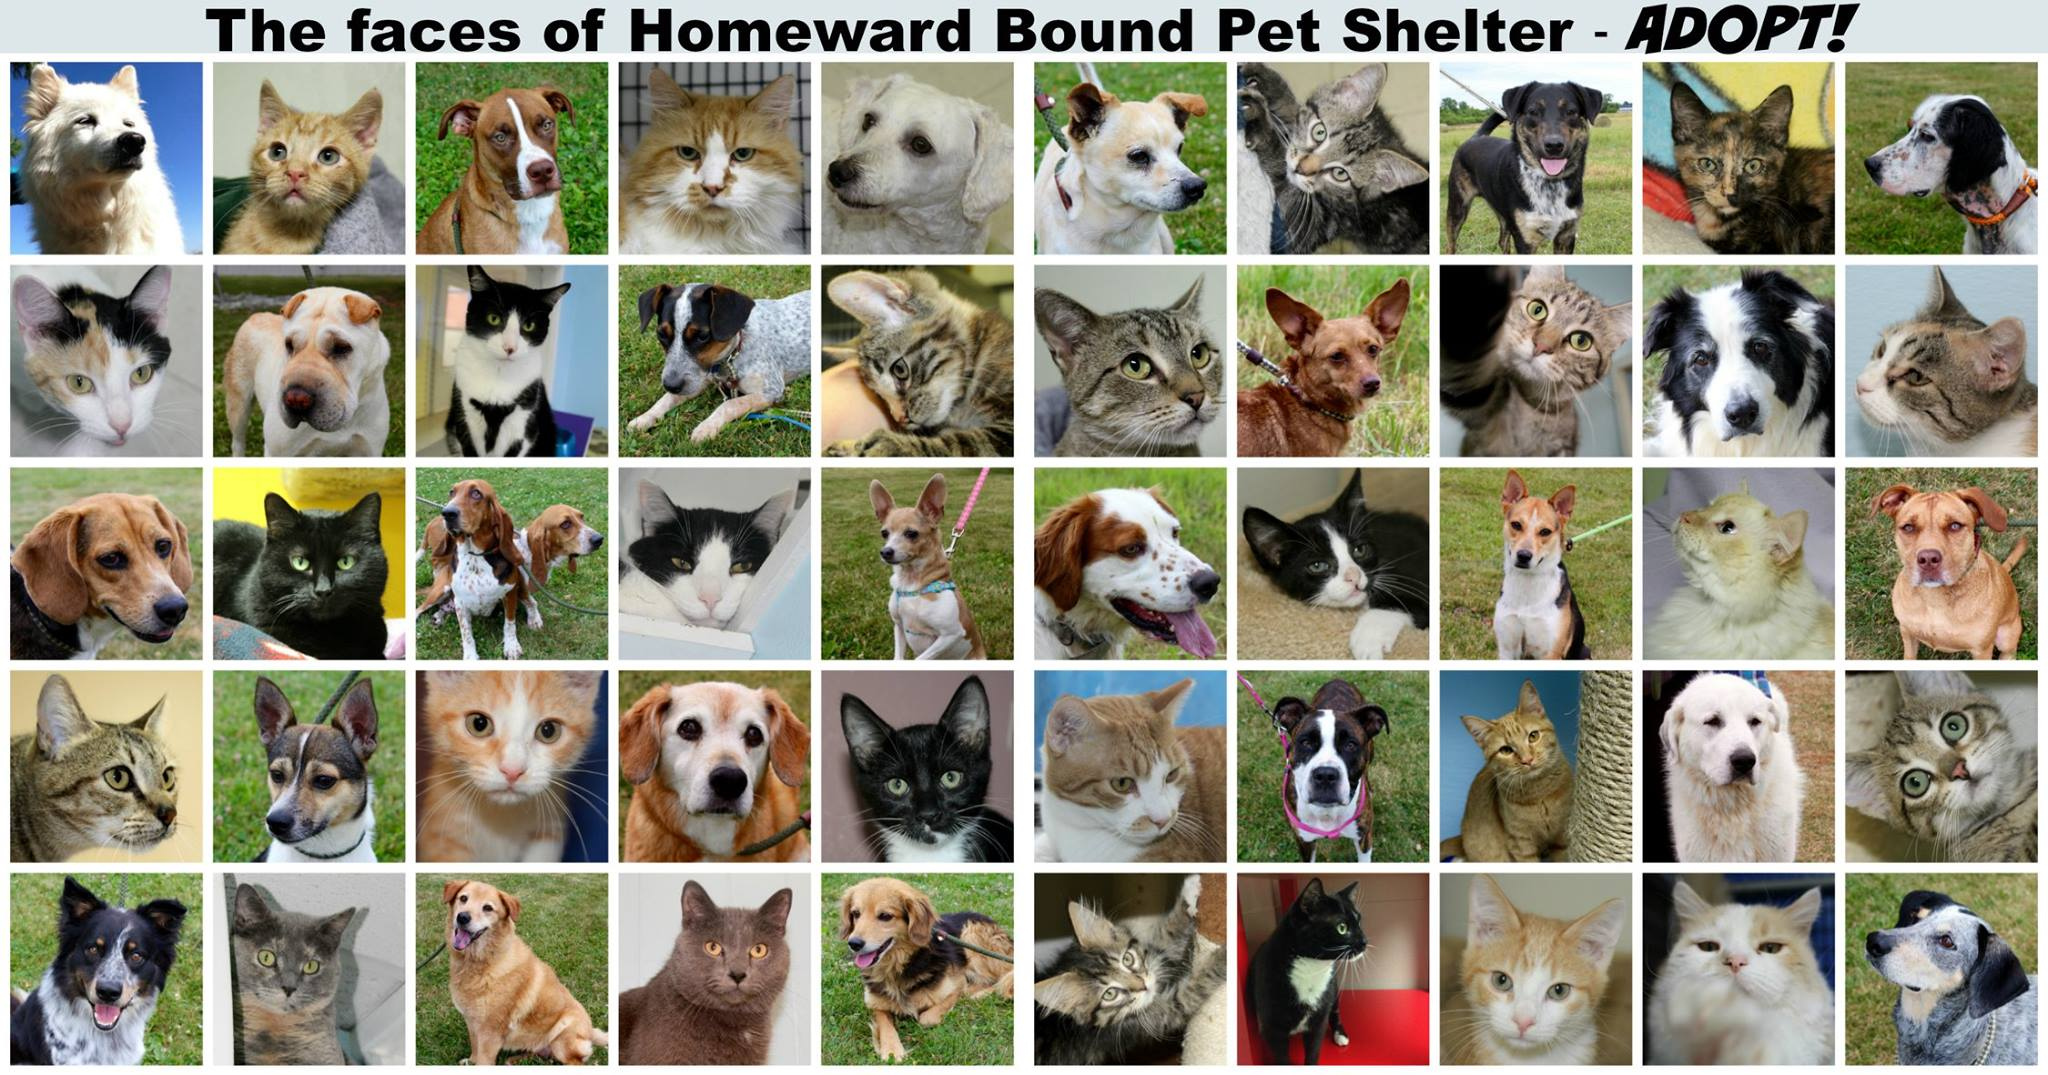 Adopt from Homeward Bound Pet Shelter in Decatur, IL. These pets & more are counting on us for forever homes before August 31, 2016.